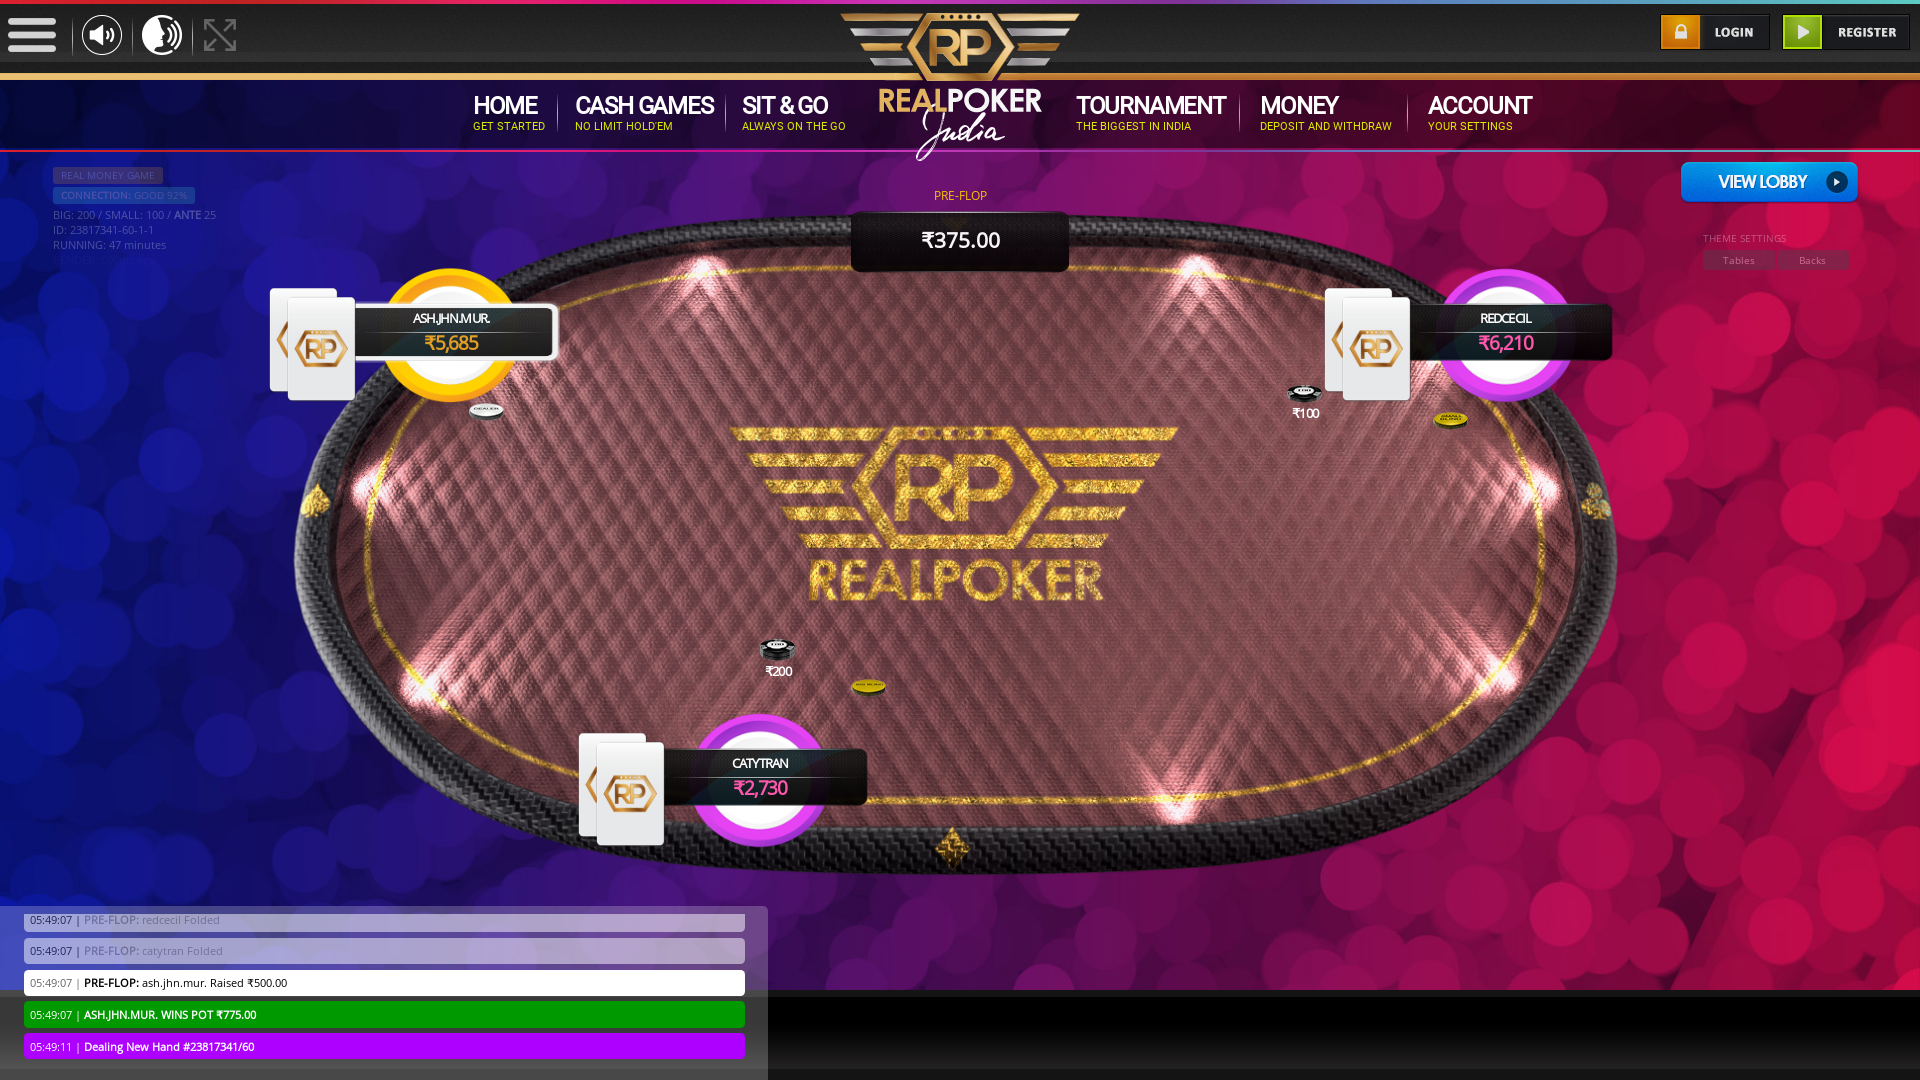 10 player texas holdem table at real poker with the table id 23817341